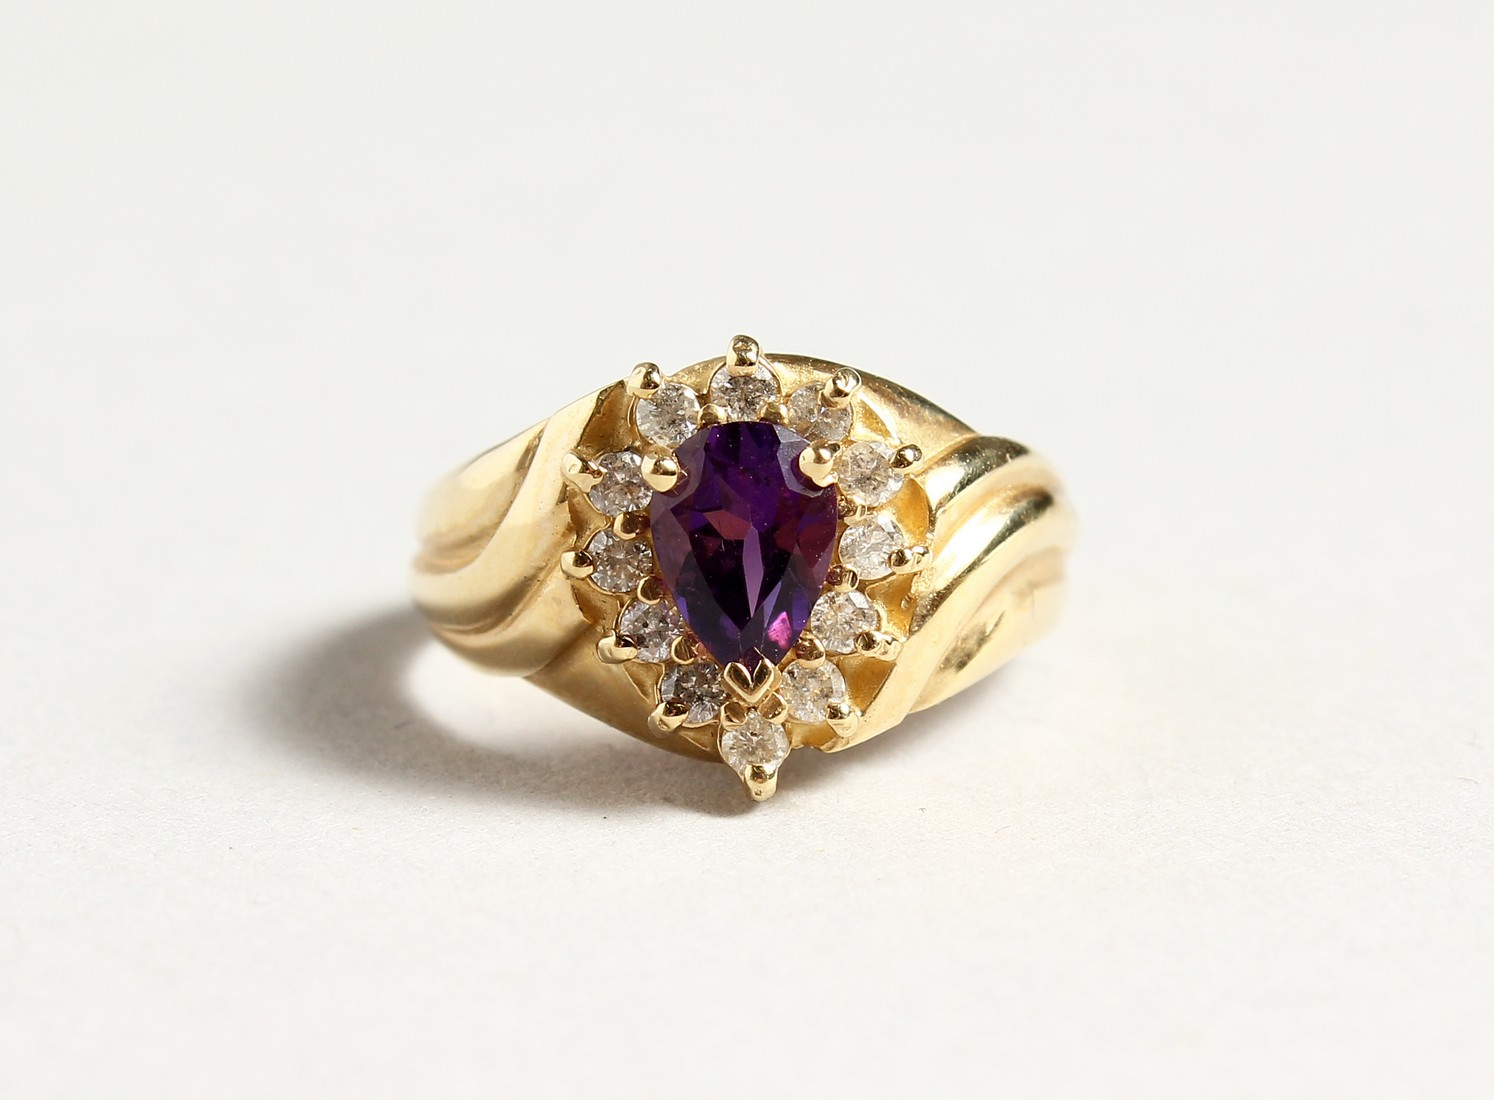 A 14CT GOLD, AMETHYST AND DIAMOND TEAR DROP RING